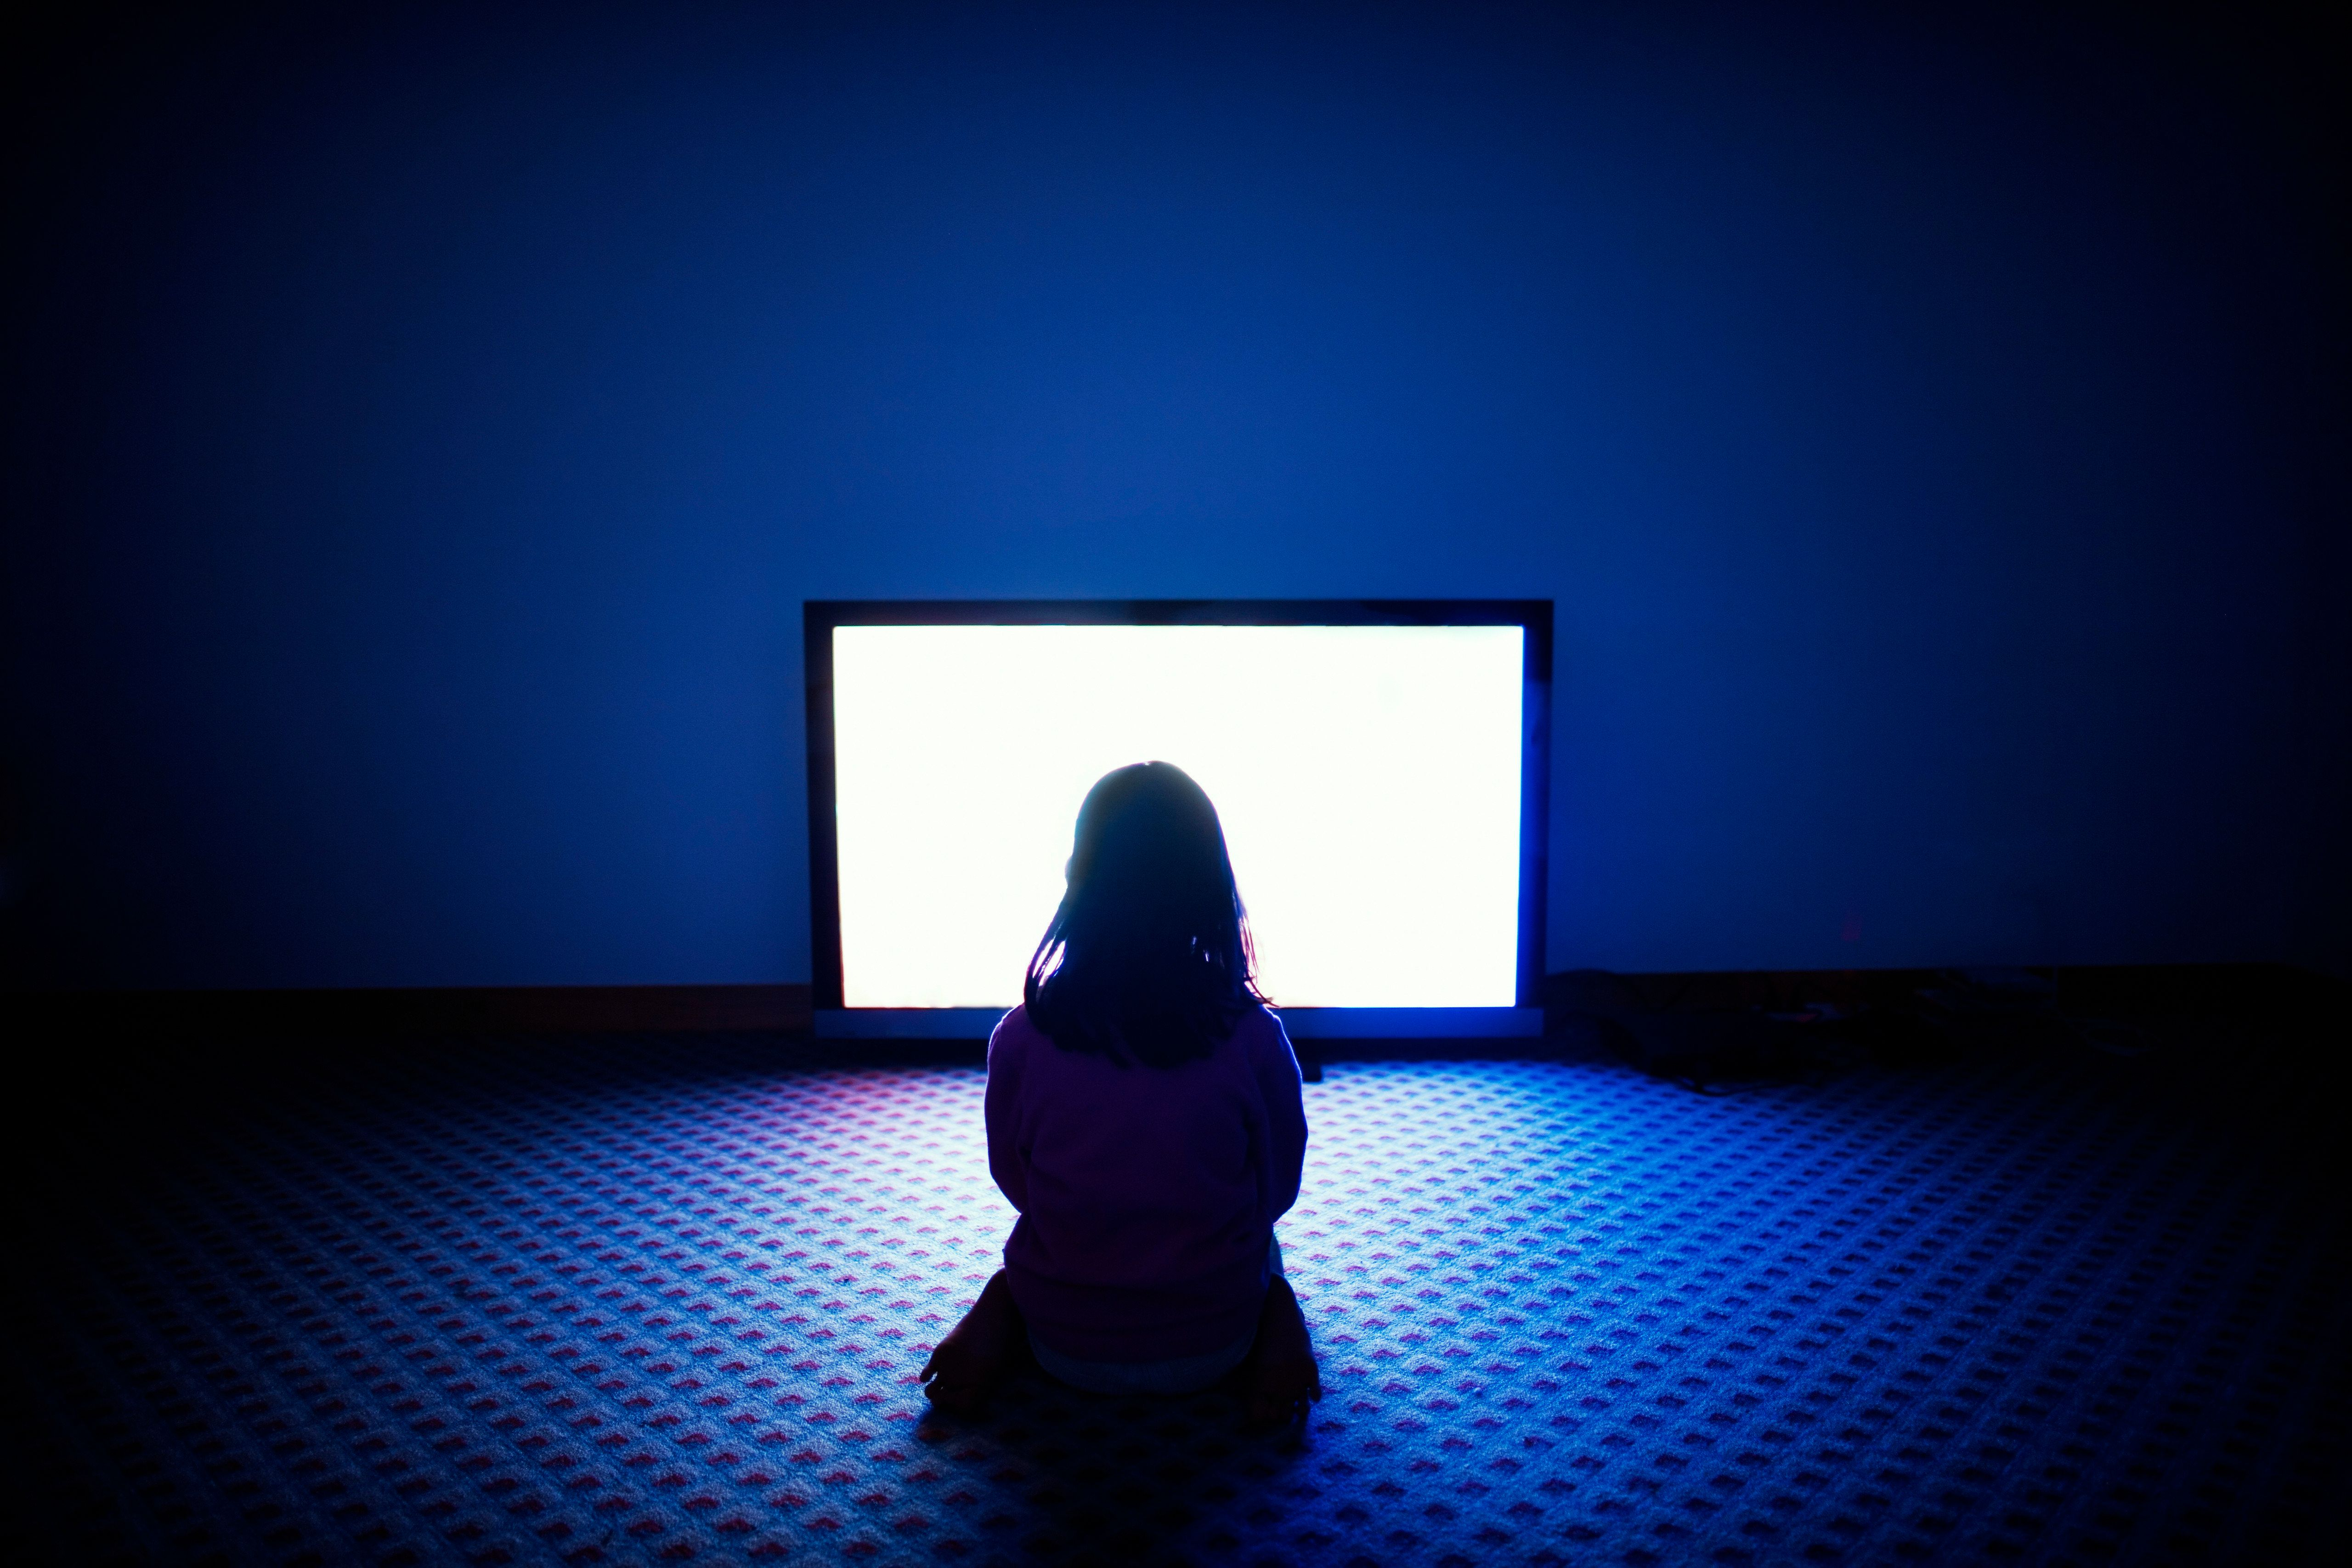 tv is bad for your health 2015-4-2 tv viewing is much maligned by moral crusaders and health experts alike, but how bad is it for your health we separate fact from fiction and determine conclusively what risk, if any, the box poses to your well-being.